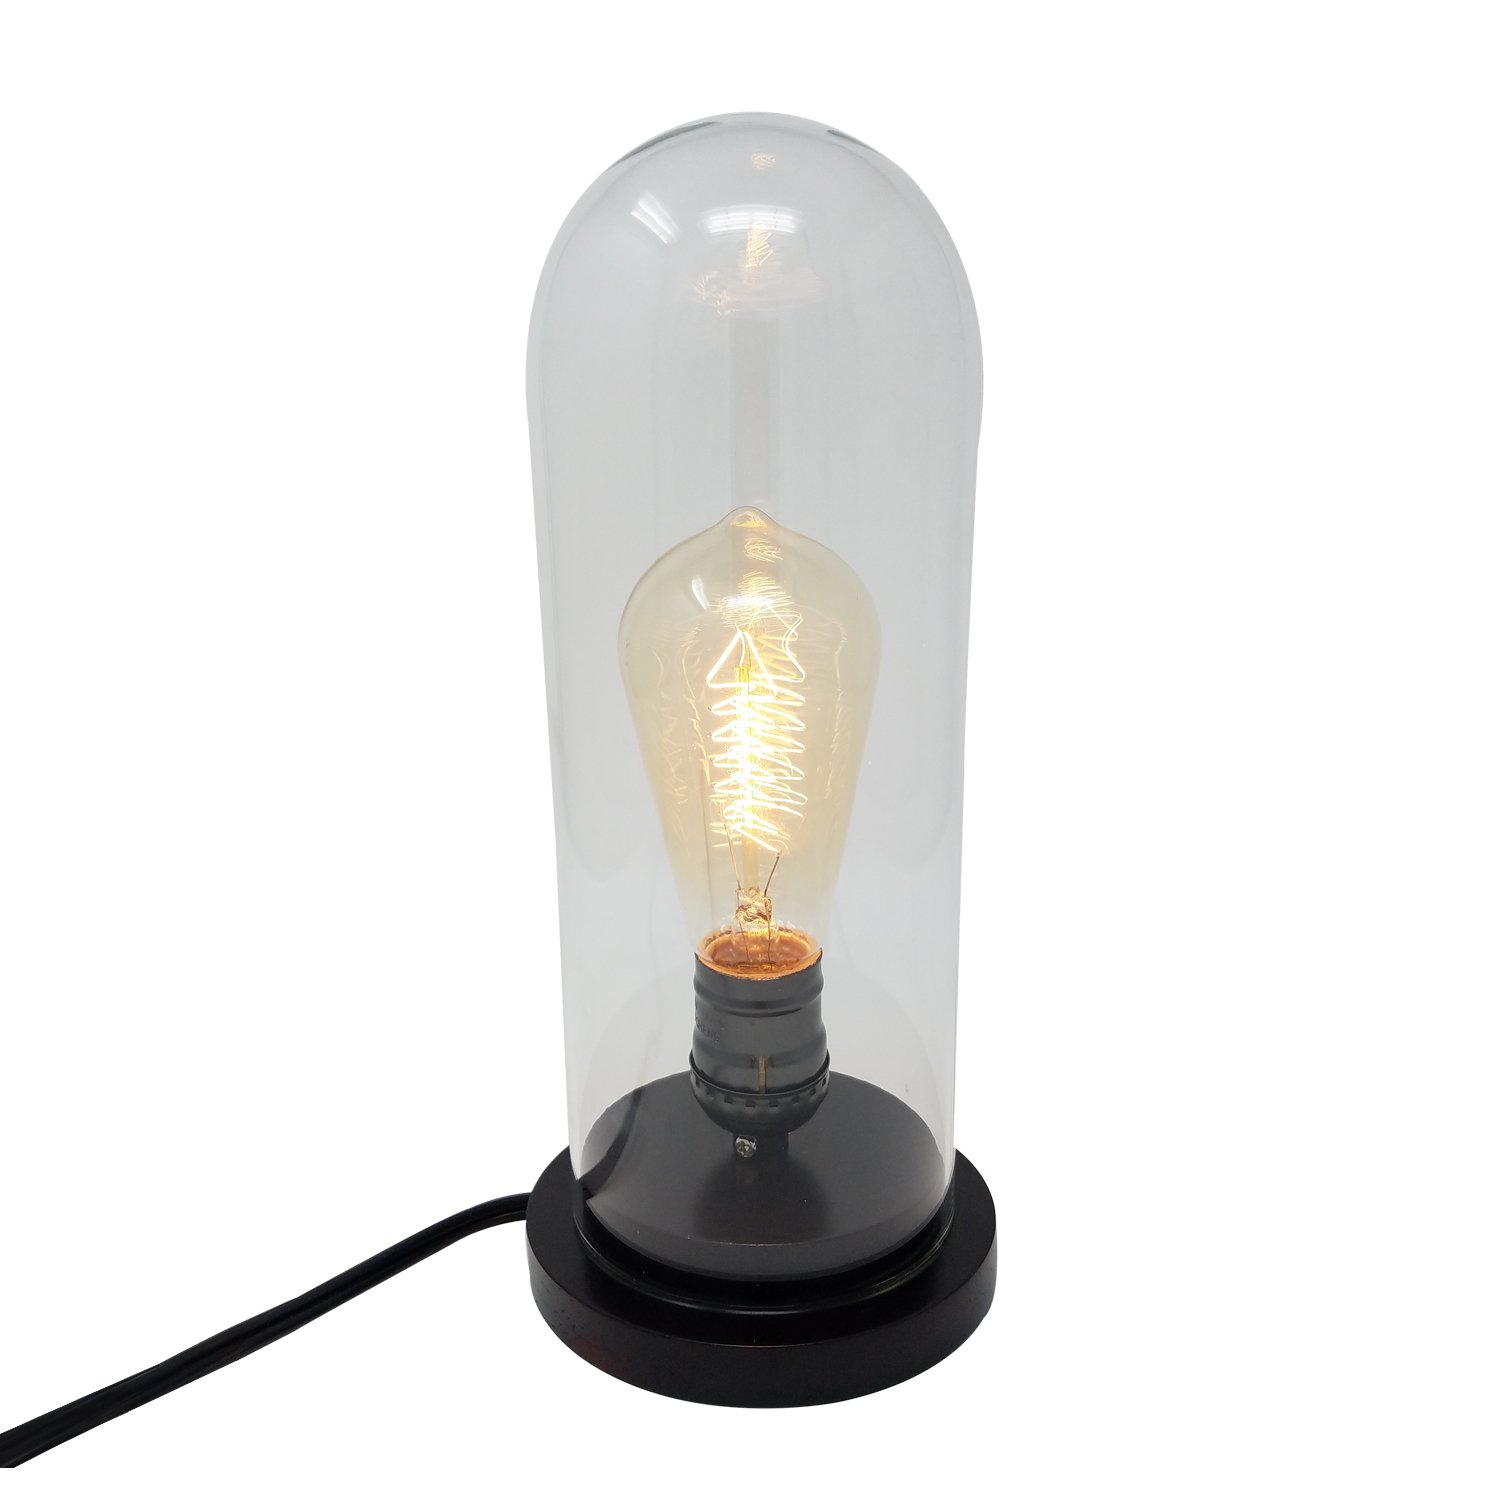 Himalayan Glow 1386 Vintage Desk Lamp Glass Shade 40W Edison Bulb Included by Wbm